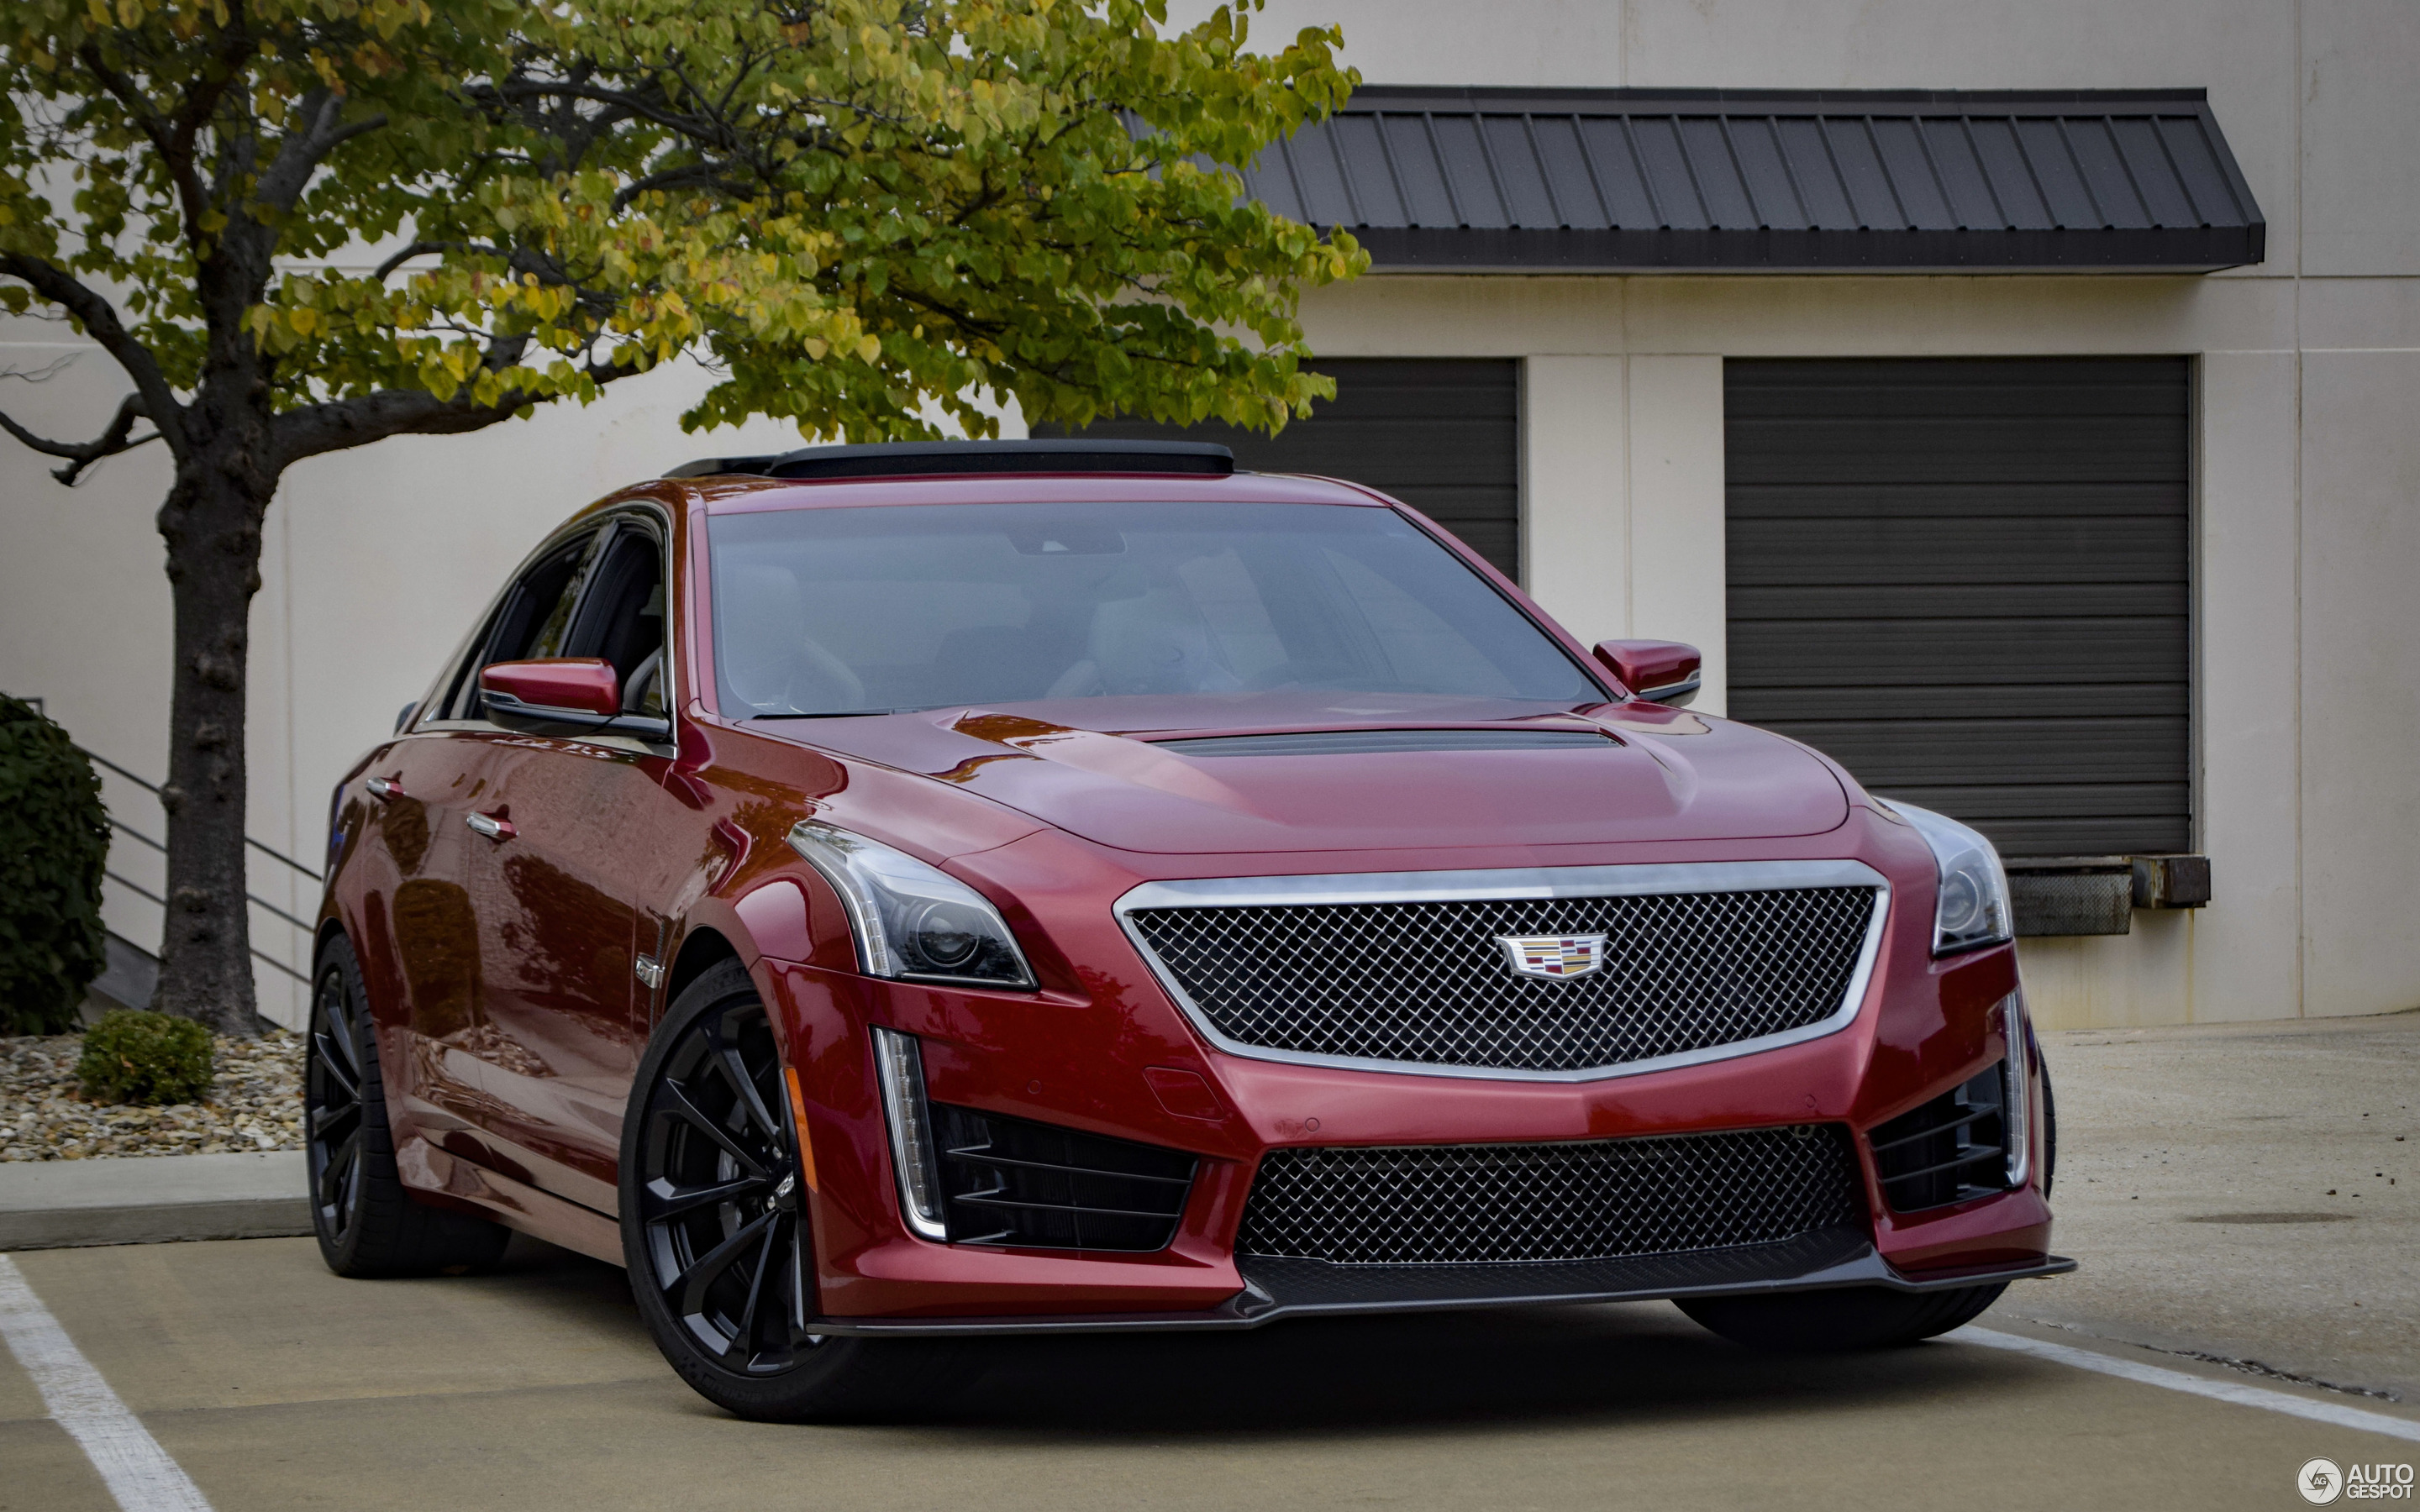 v pages news summer this media generation cts apr detail en content launches next hp vehicles us cadillac sedan